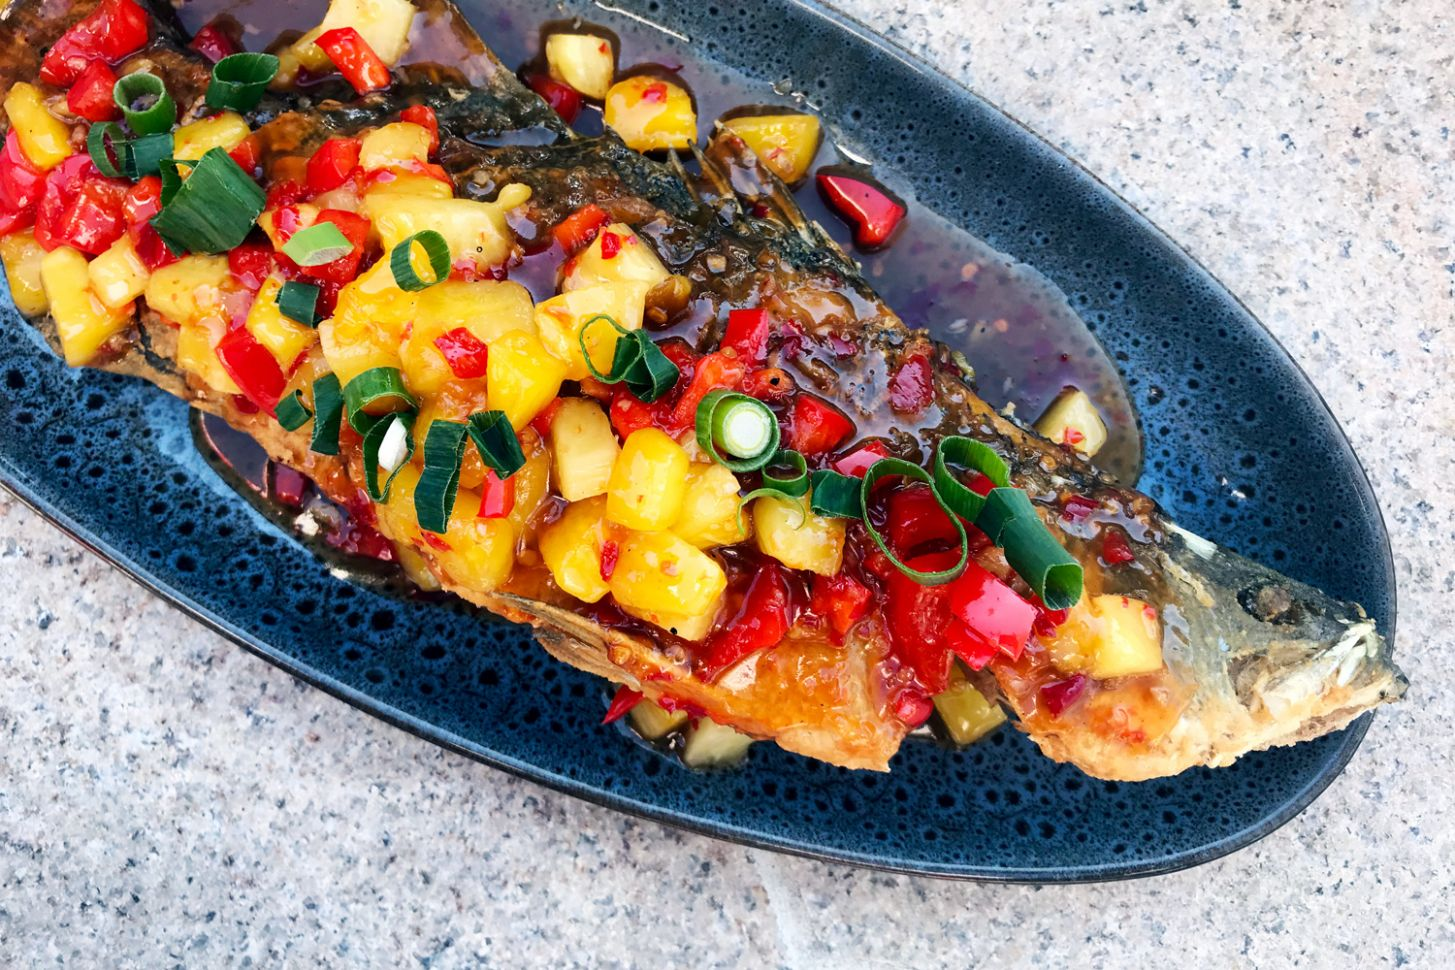 Thai Style Deep Fried Whole Fish with Pineapples and Sweet Chilli Sauce - Recipe Fish With Pineapple